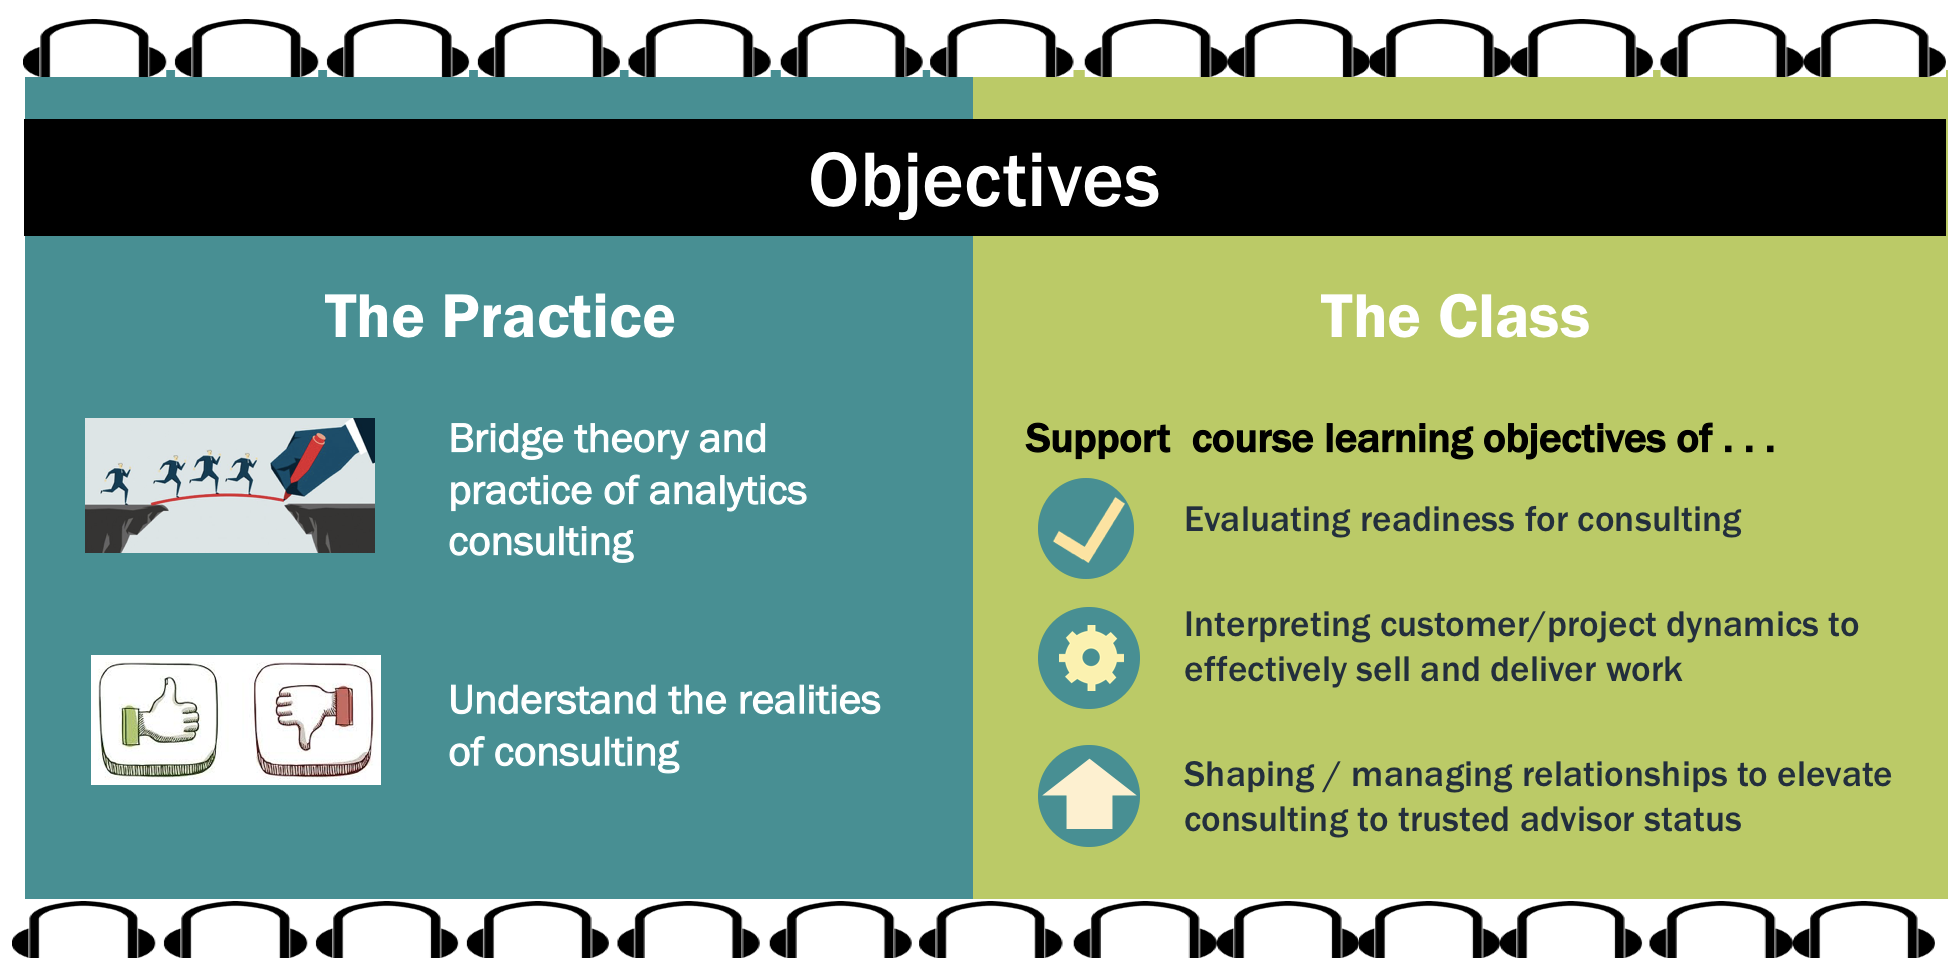 Objectives: The Practice: bridge the theory and practice of analytics consulting and understand the realities of the consulting profession. The Classroom: additionally, we needed to address the practical issues in a way which supported the course learning objectives of: helping students evaluate their readiness for a consulting career; interpreting customer/project dynamics to effectively sell and deliver consulting work; shape / manage client relationships to elevate consulting to a trused advisor status